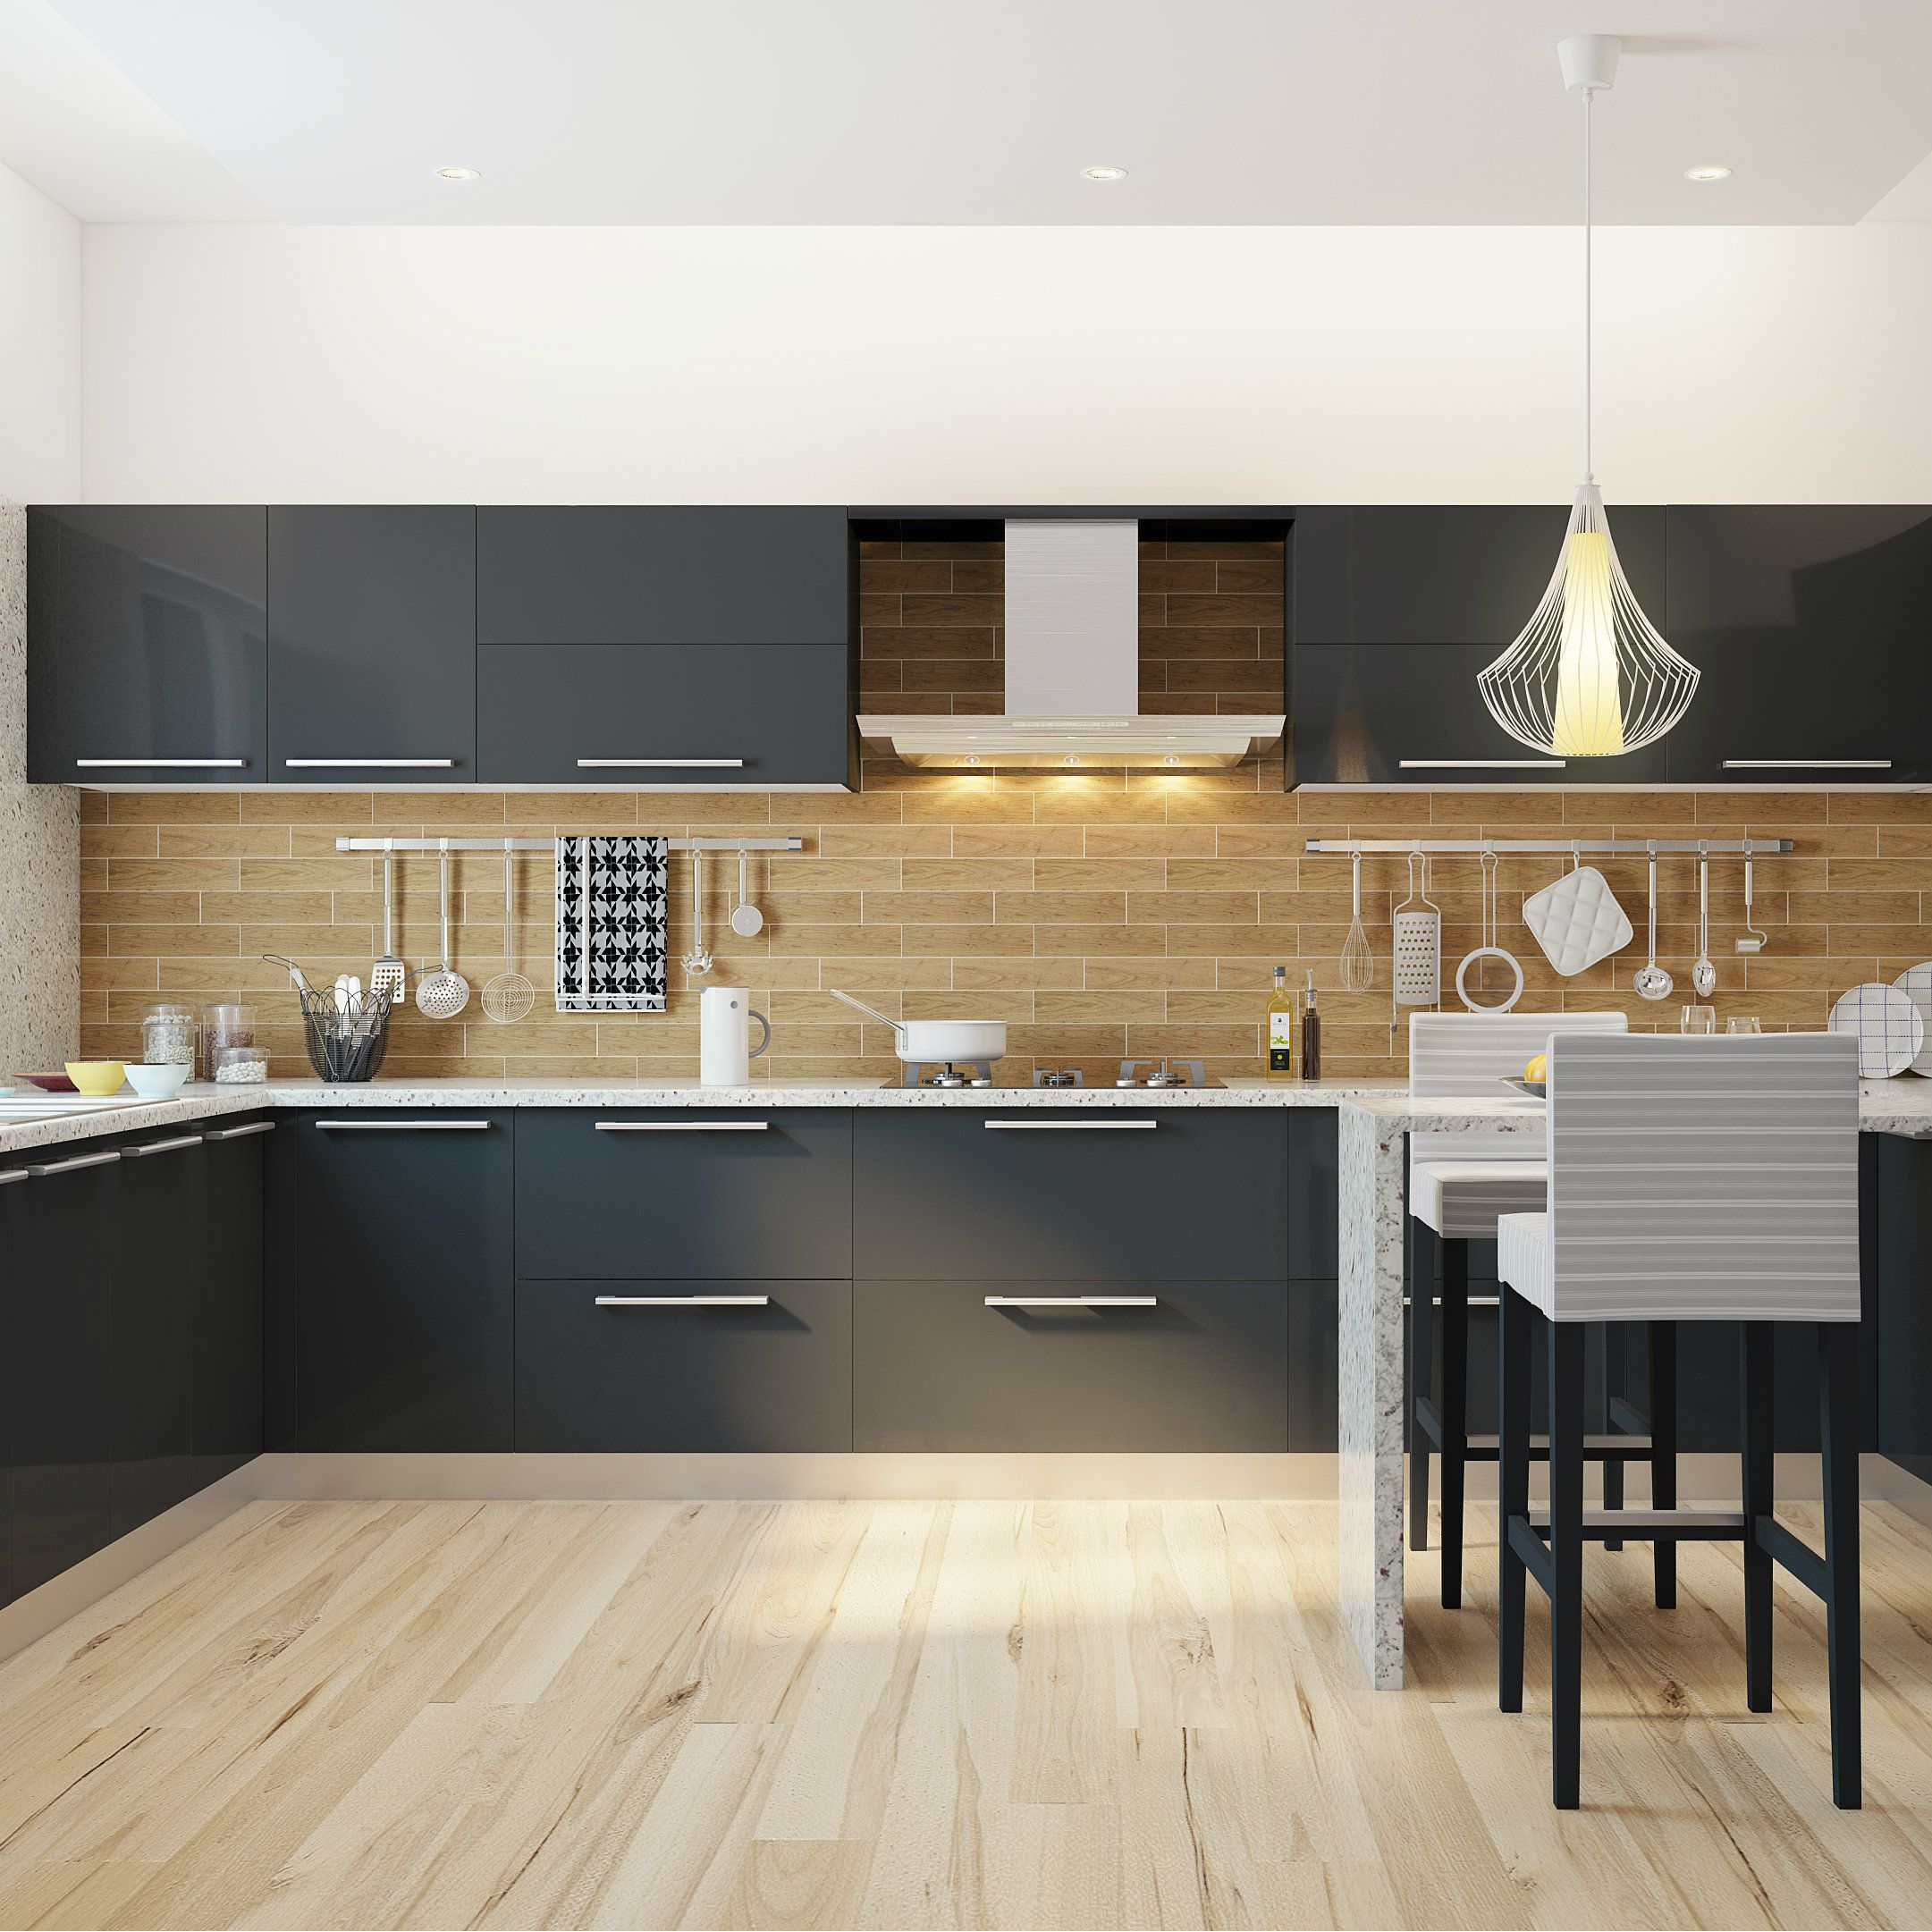 Kitchen Tiles Colour Combination: Sprawling Modular Kitchen With A Breakfast Counter